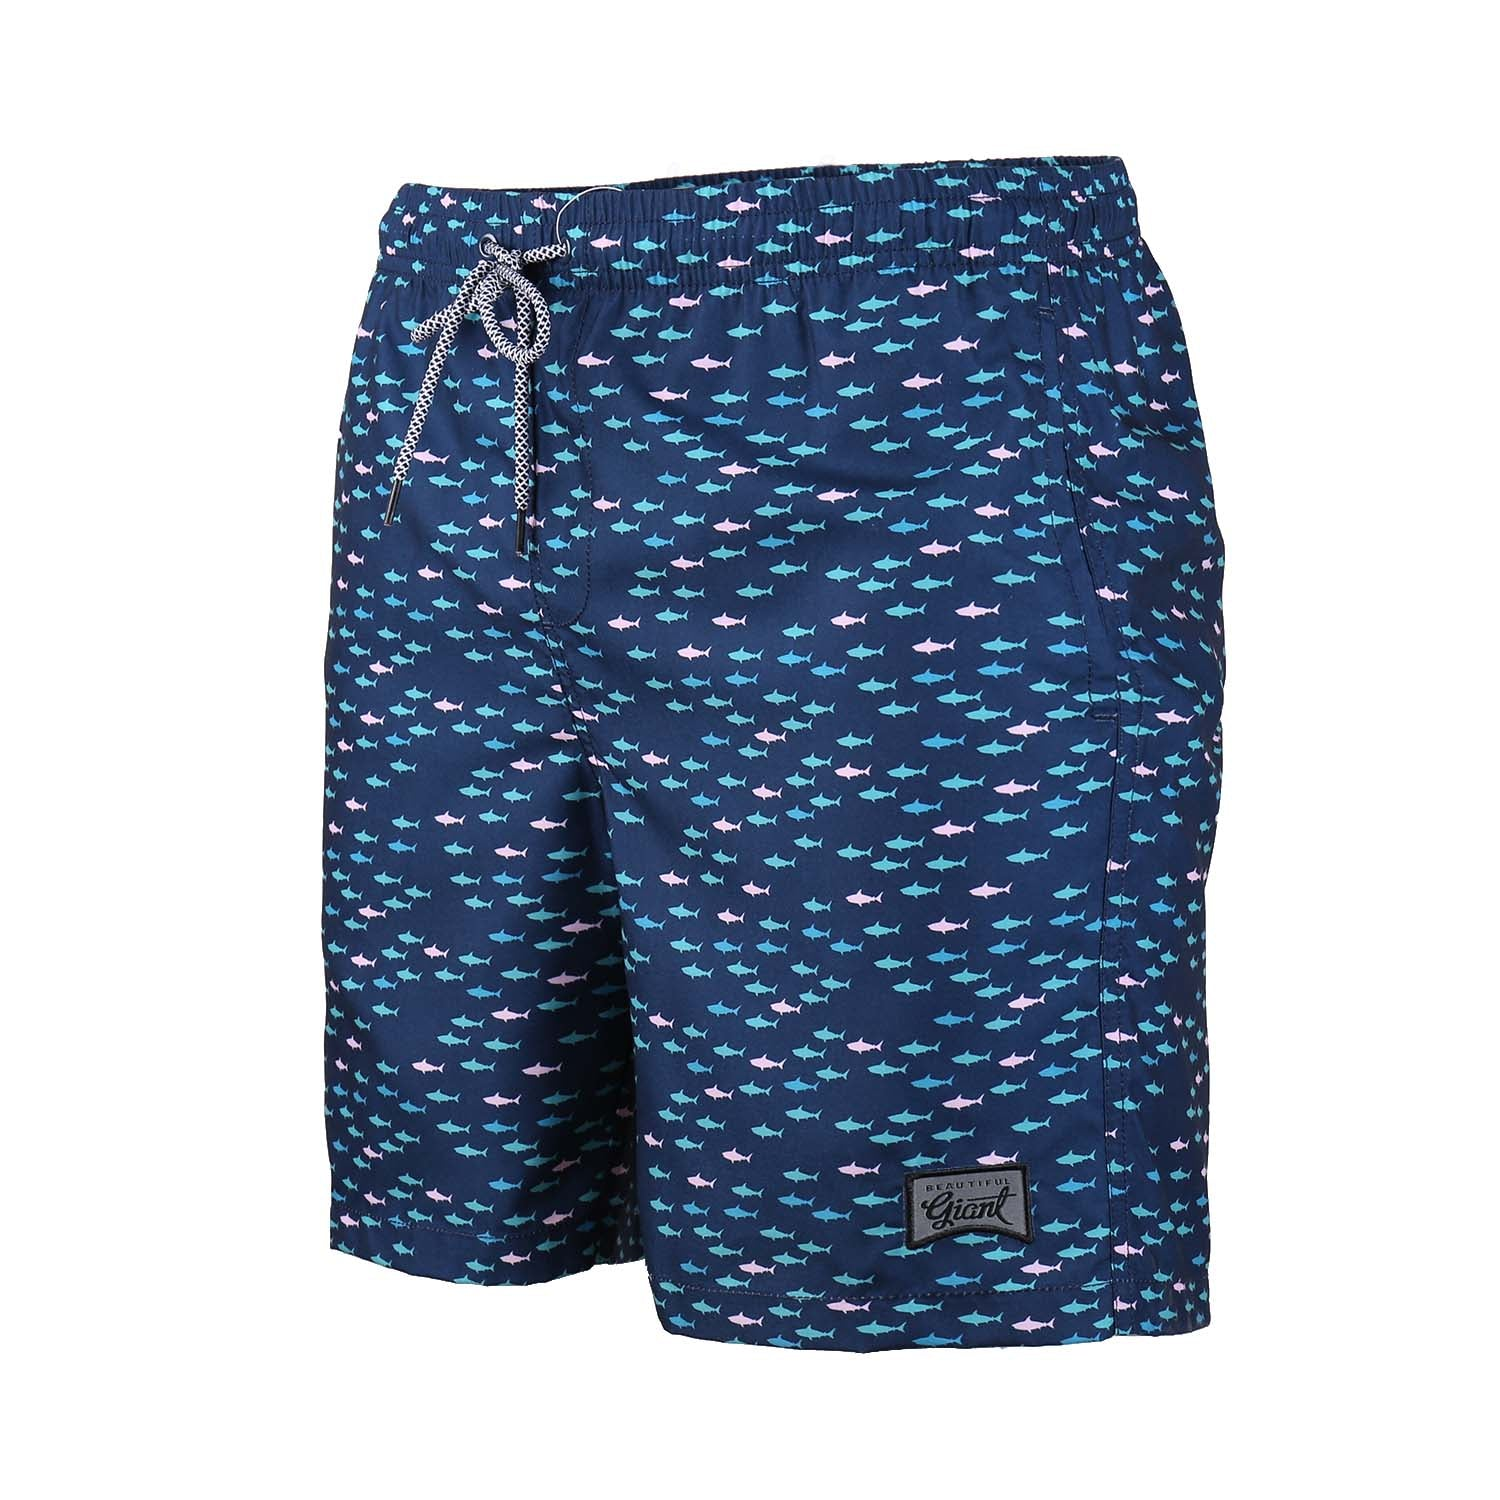 Men's-Beach-Vacation-Swimwear--Shorts-(BGT-2011-NAVY)